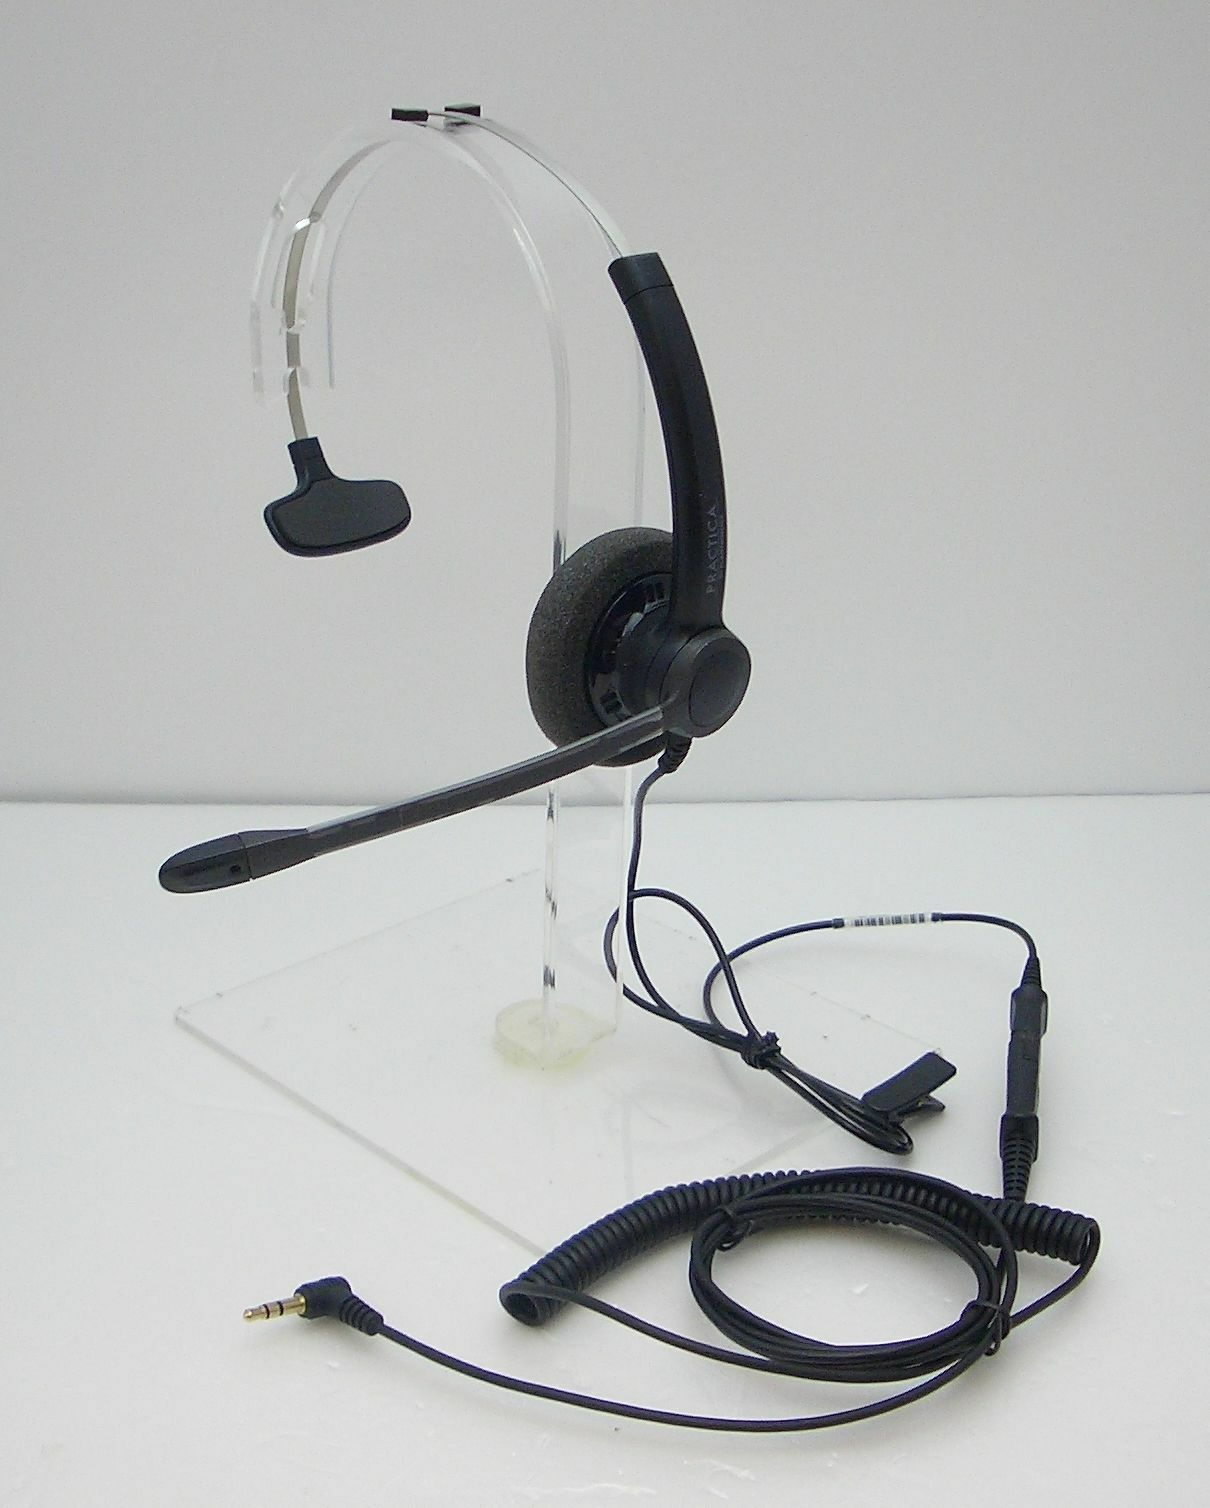 Details about Plantronics SP11-QD Headset with IP-Touch Cable for Alcatel 8028 8029 8038 8039